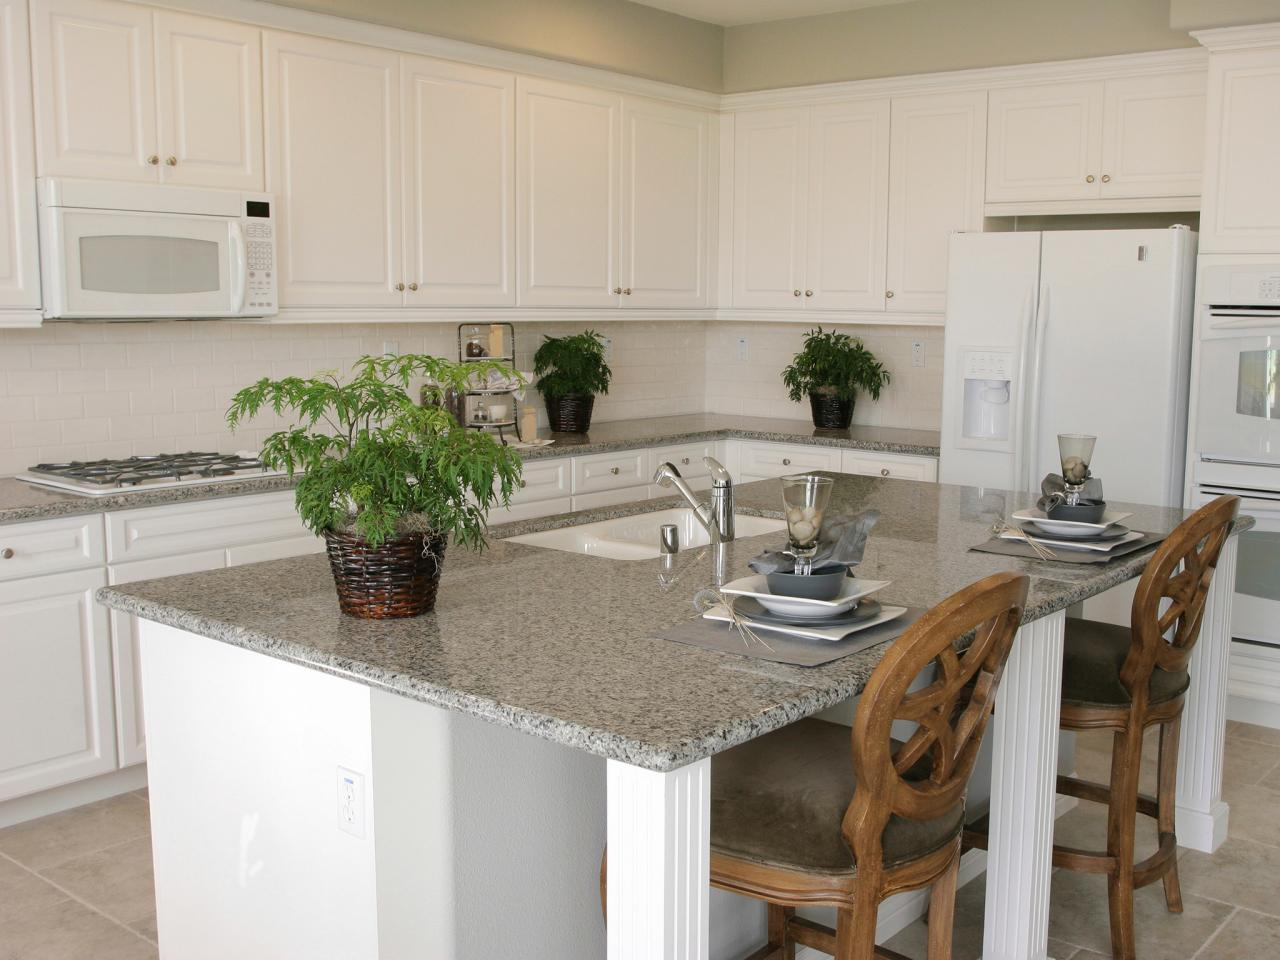 Granite countertops most popular favorite - Neutral Granite Countertops